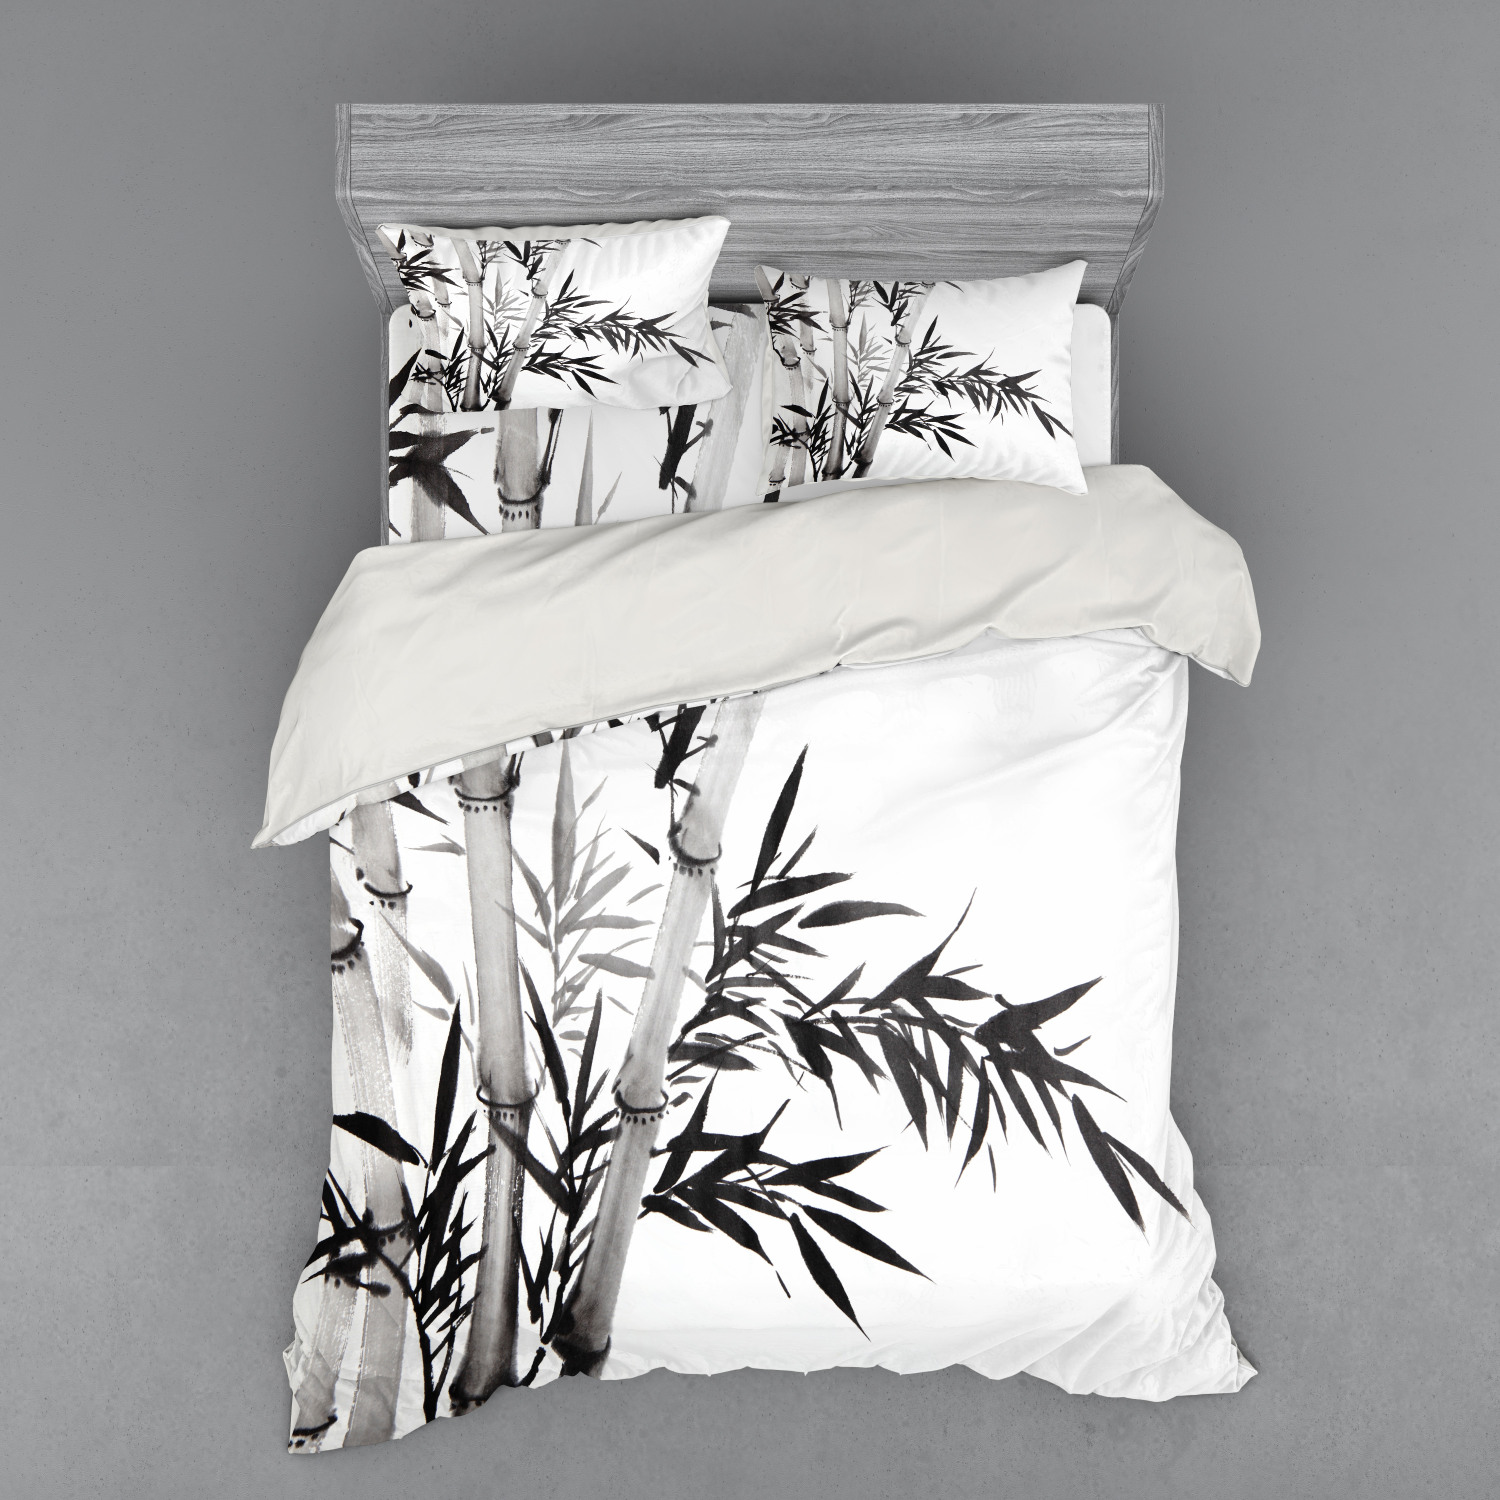 thumbnail 58 - Ambesonne Black White Art Bedding Set Duvet Cover Sham Fitted Sheet in 3 Sizes